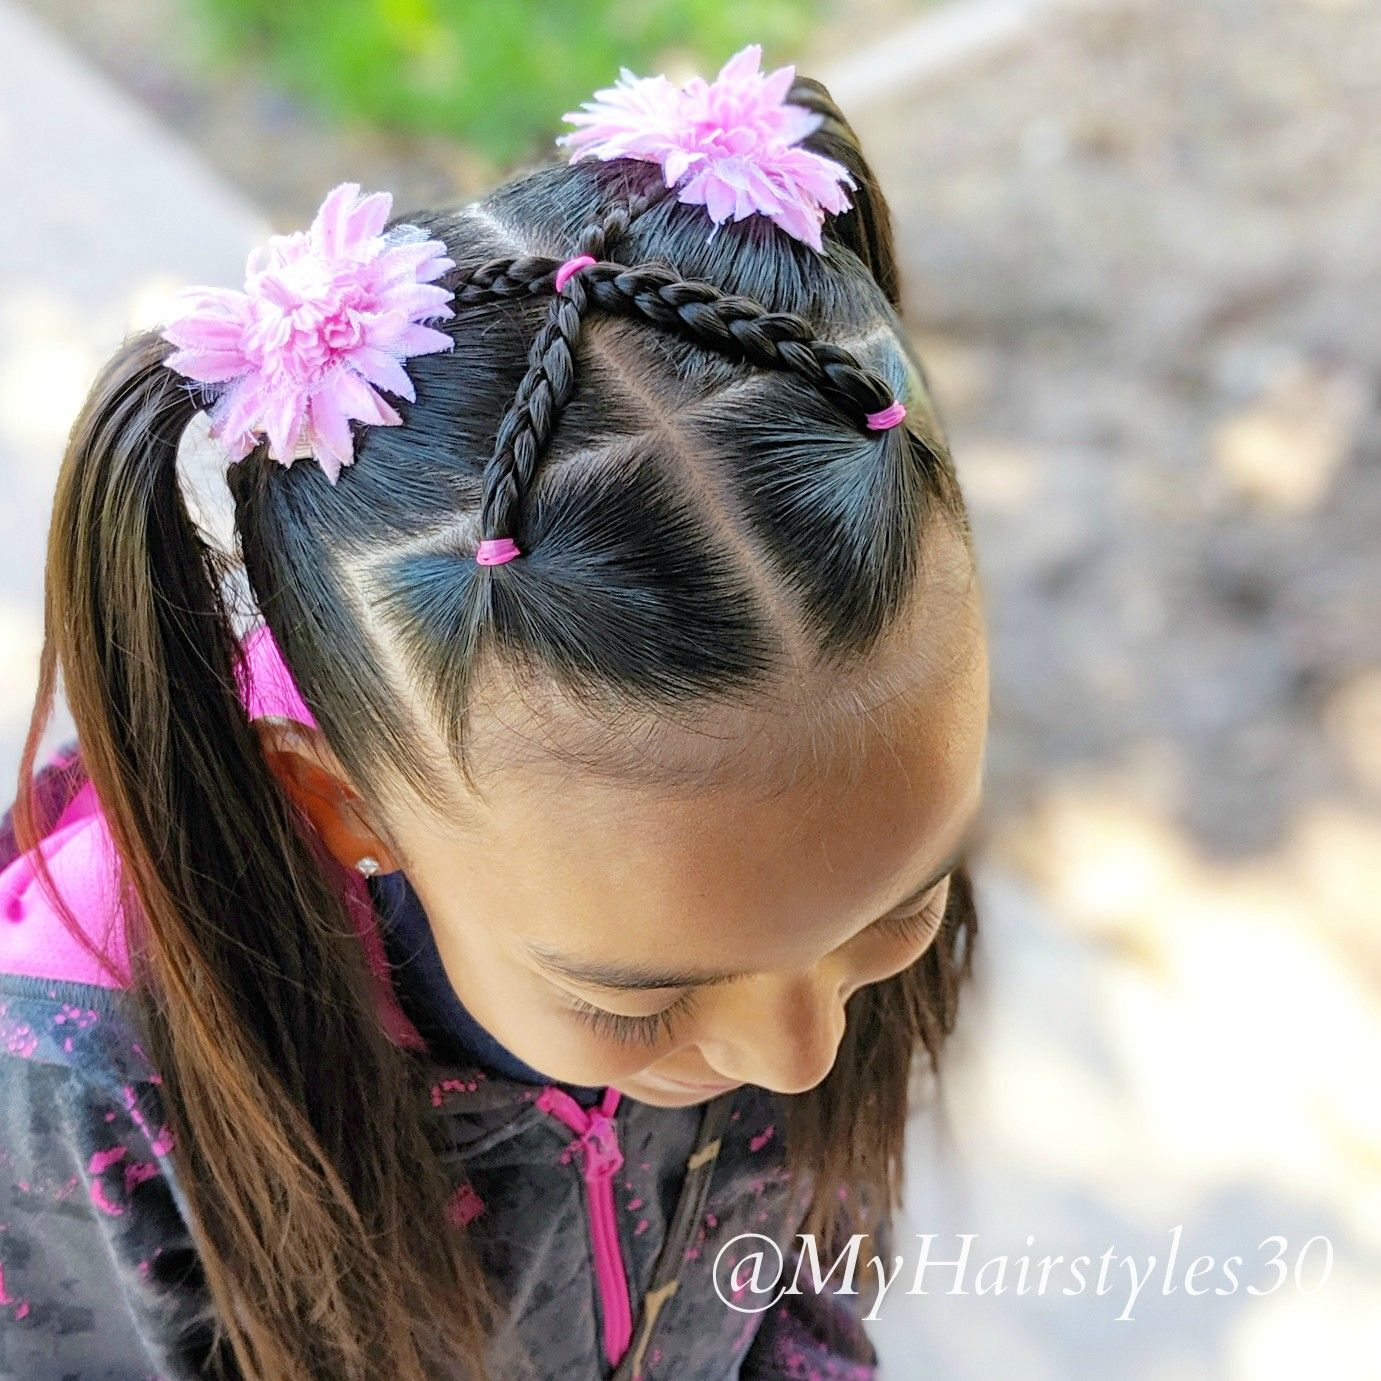 Criss Cross Braids Into Two Ponytails 06 21 2019 Instagram Myhairstyles30 In 2020 Hair Styles Girl Hair Dos Little Girl Hairstyles